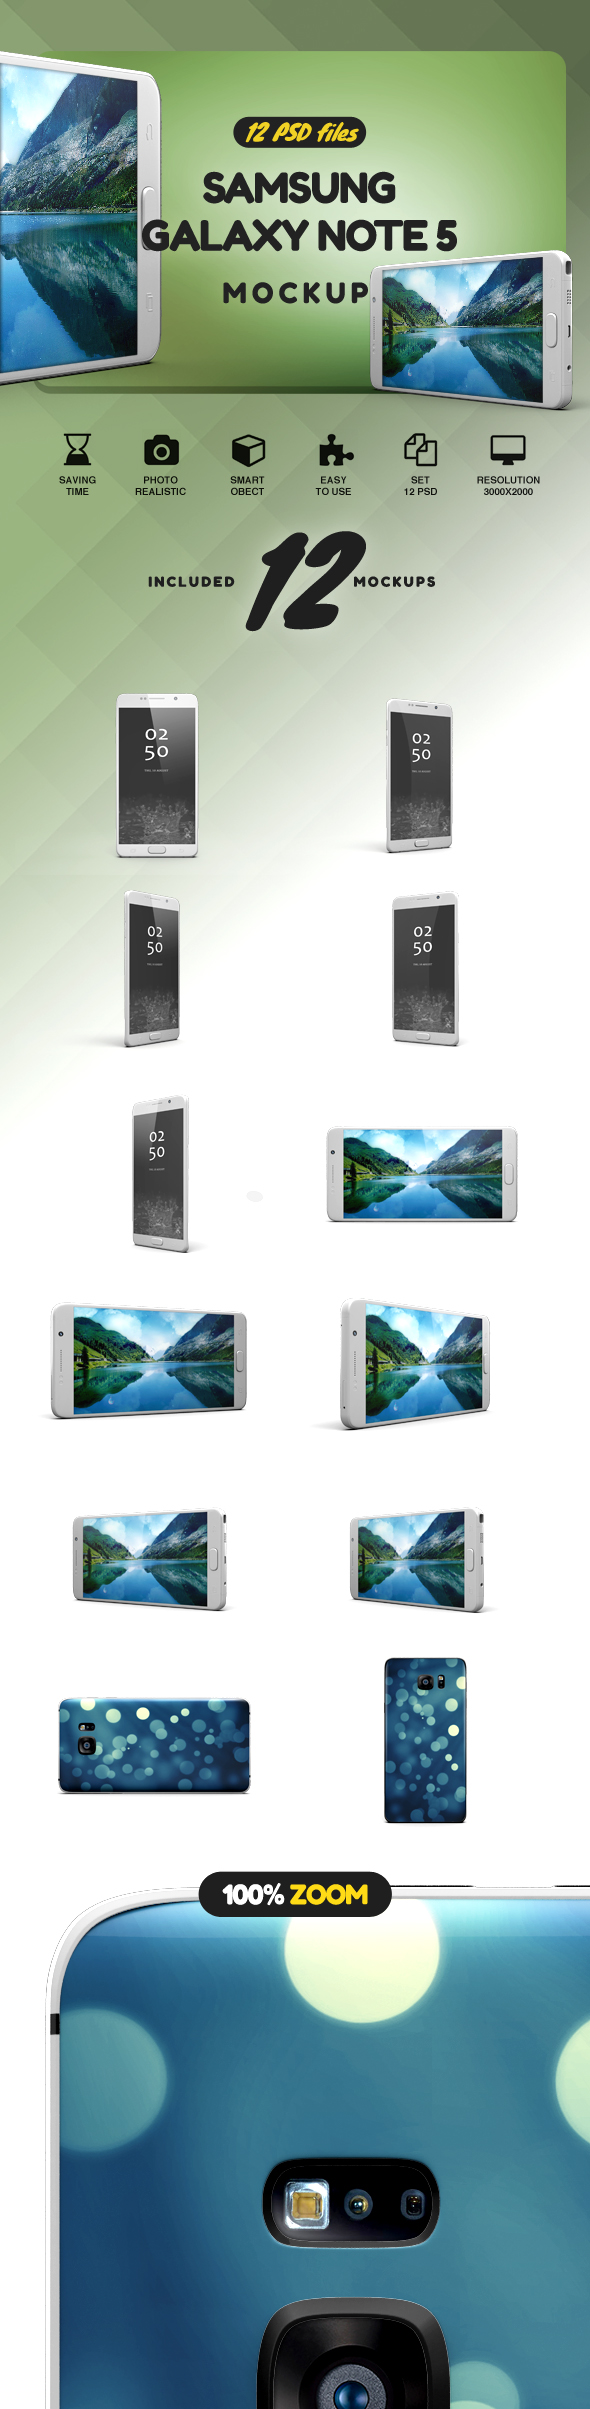 Samsung Galaxy Note 5 Mock-up example image 2